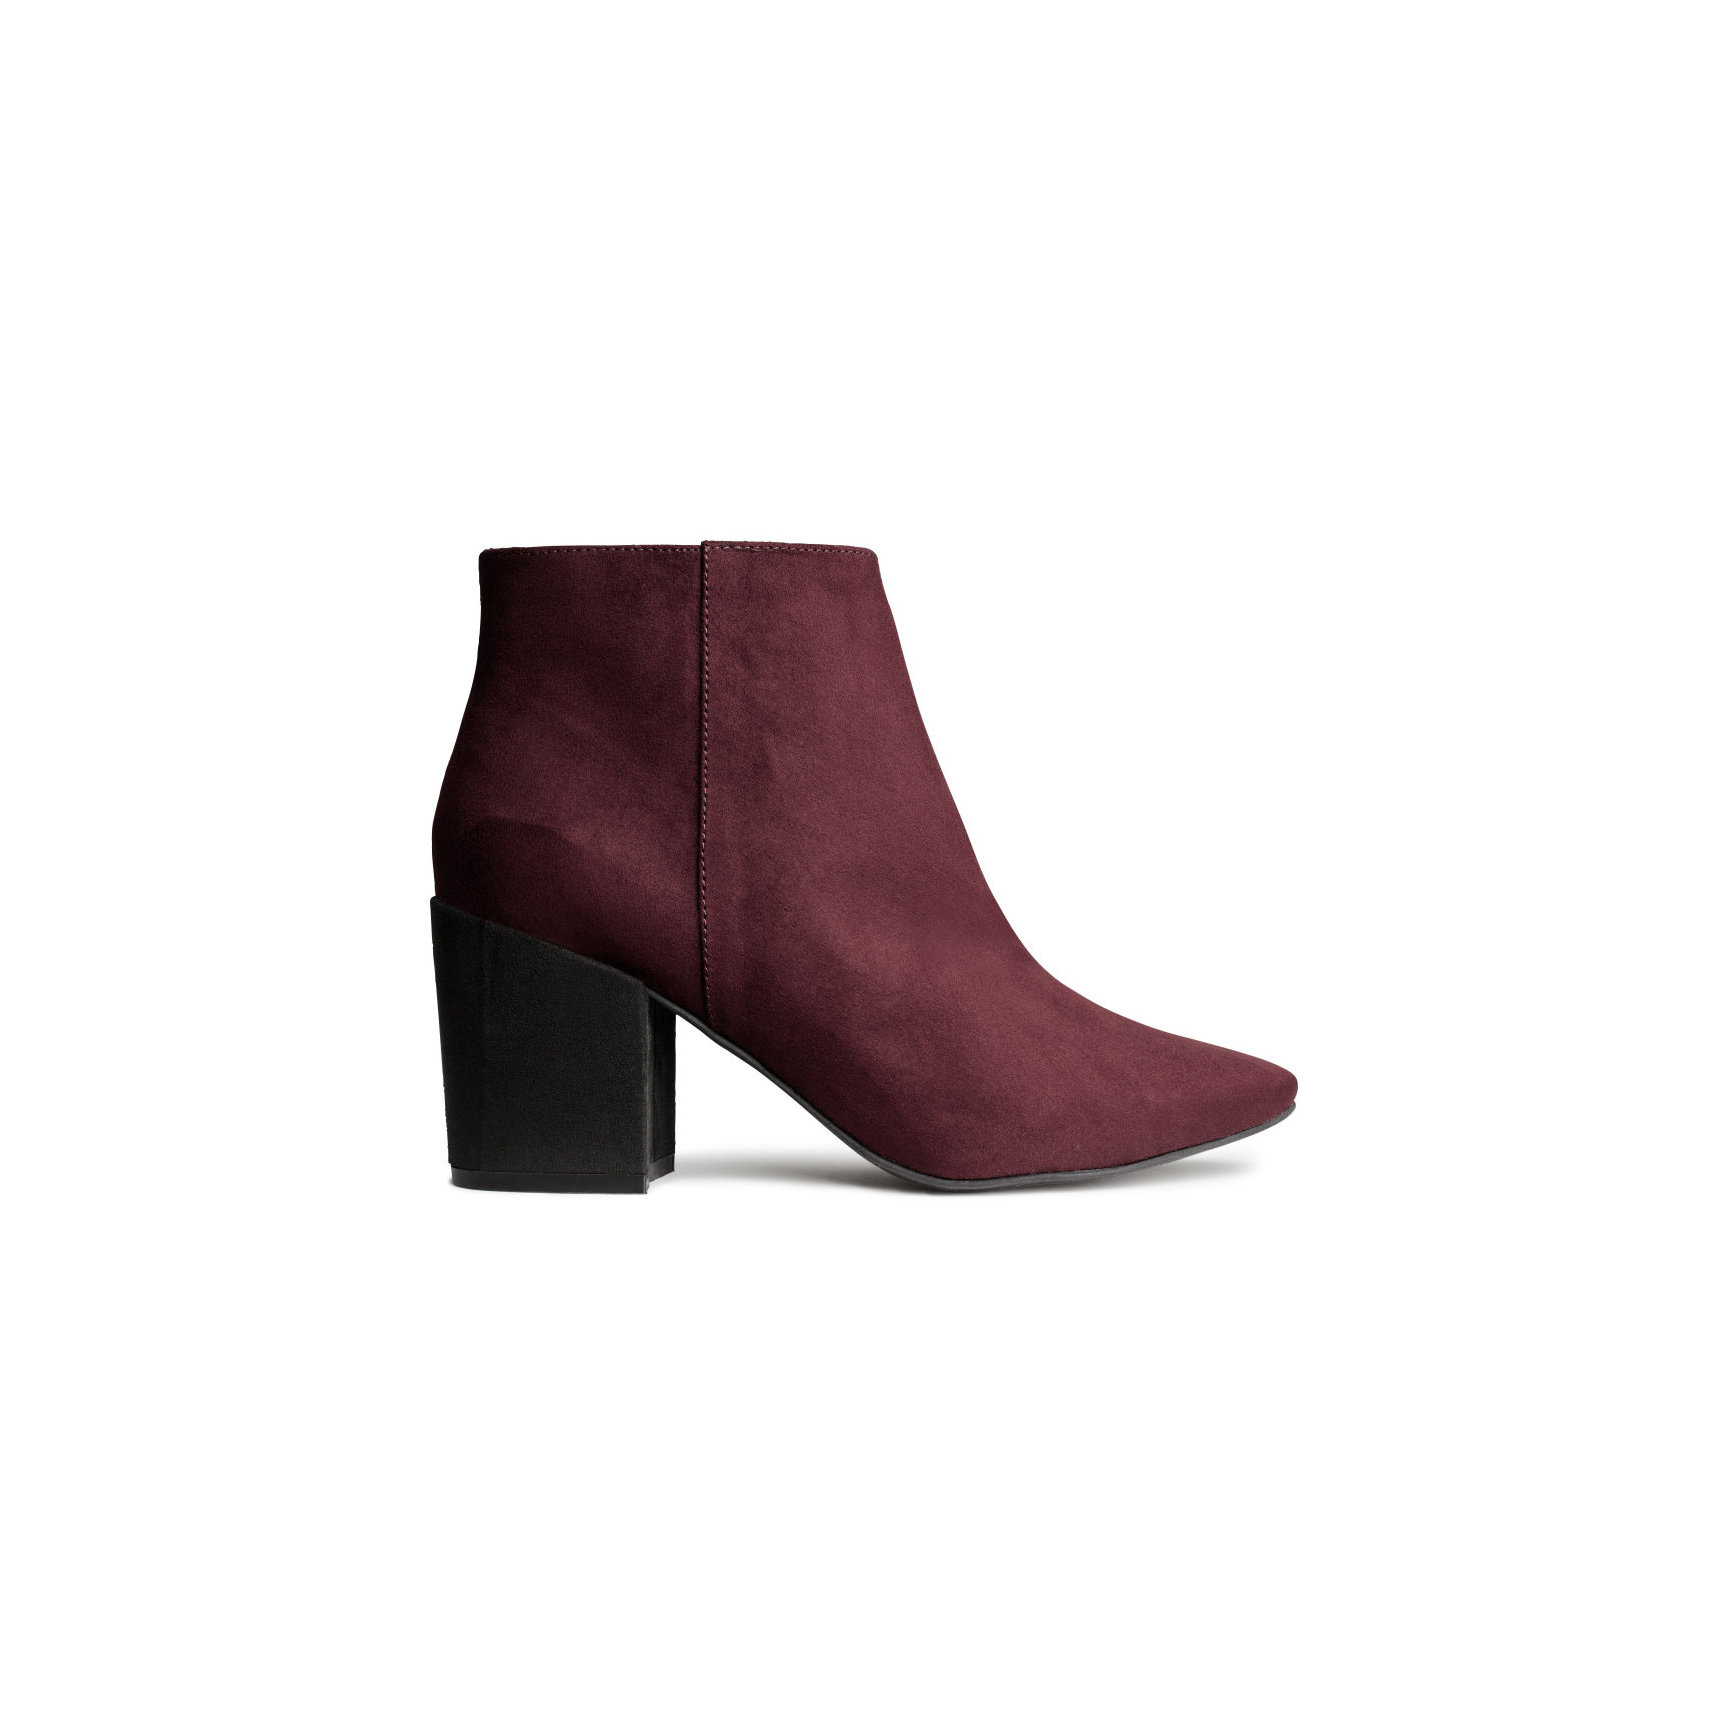 H&M Ankle Boots Burgundy